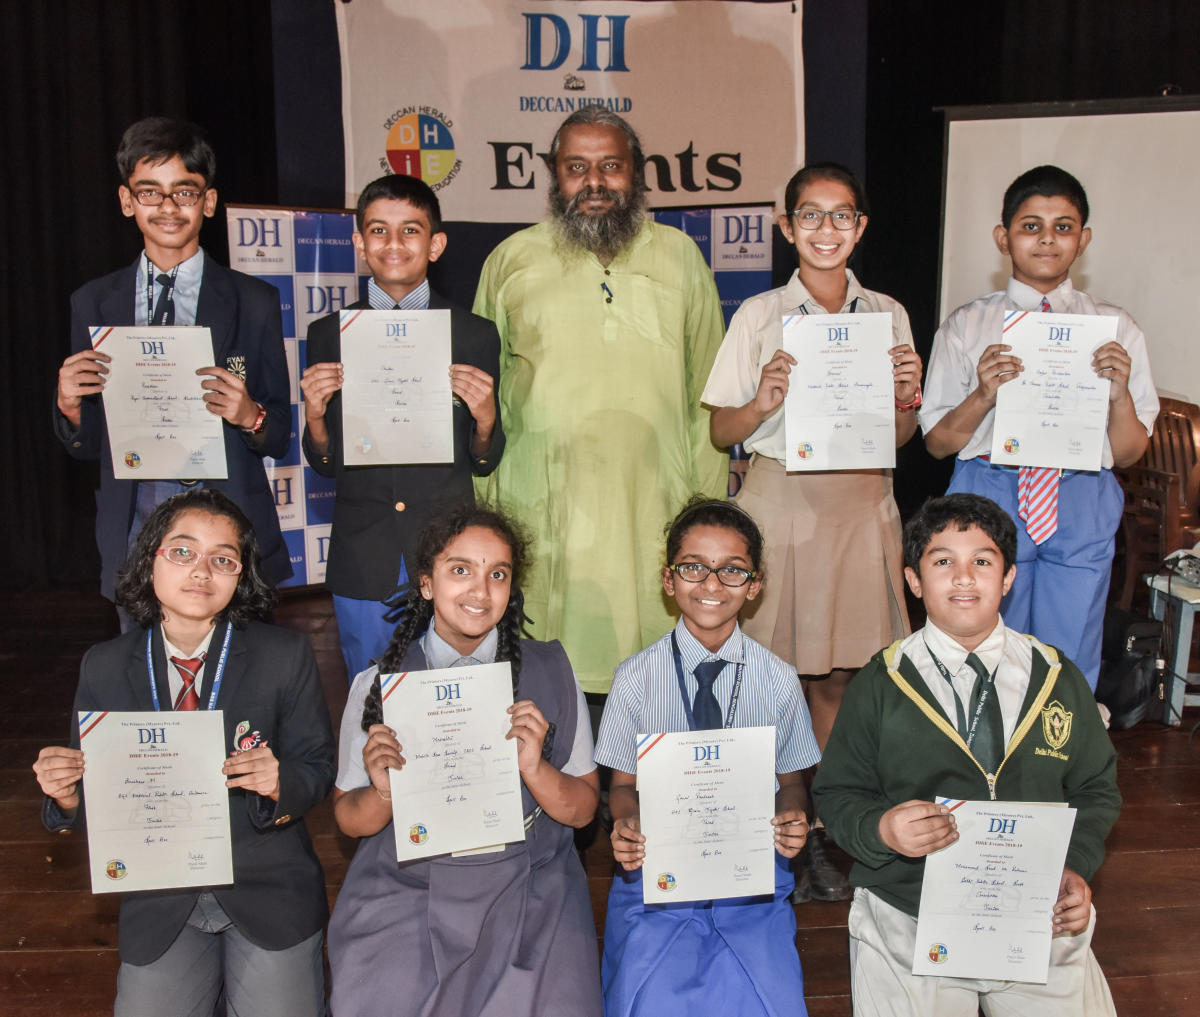 Senior category (standing from Left) Preetham R, Ryan International School (First), Chandan U Hande, HAL Gnanajyothi (Second), Sharvari P B, National Public School Koramangala (Third) and Arjun Ravisankar, St Thomas Public School (Consolation). Junior category(sitting from left) Anushree Maitra, BGS National Public School (First), Mrinalini, Mahila Seva Samaj (Second), Gauri Pradeesh (Third) and Mohammed Saad ur Rahman, DPS South (Consolation) with Prof Arul Mani (centre). (DH Photo/S K Dinesh)